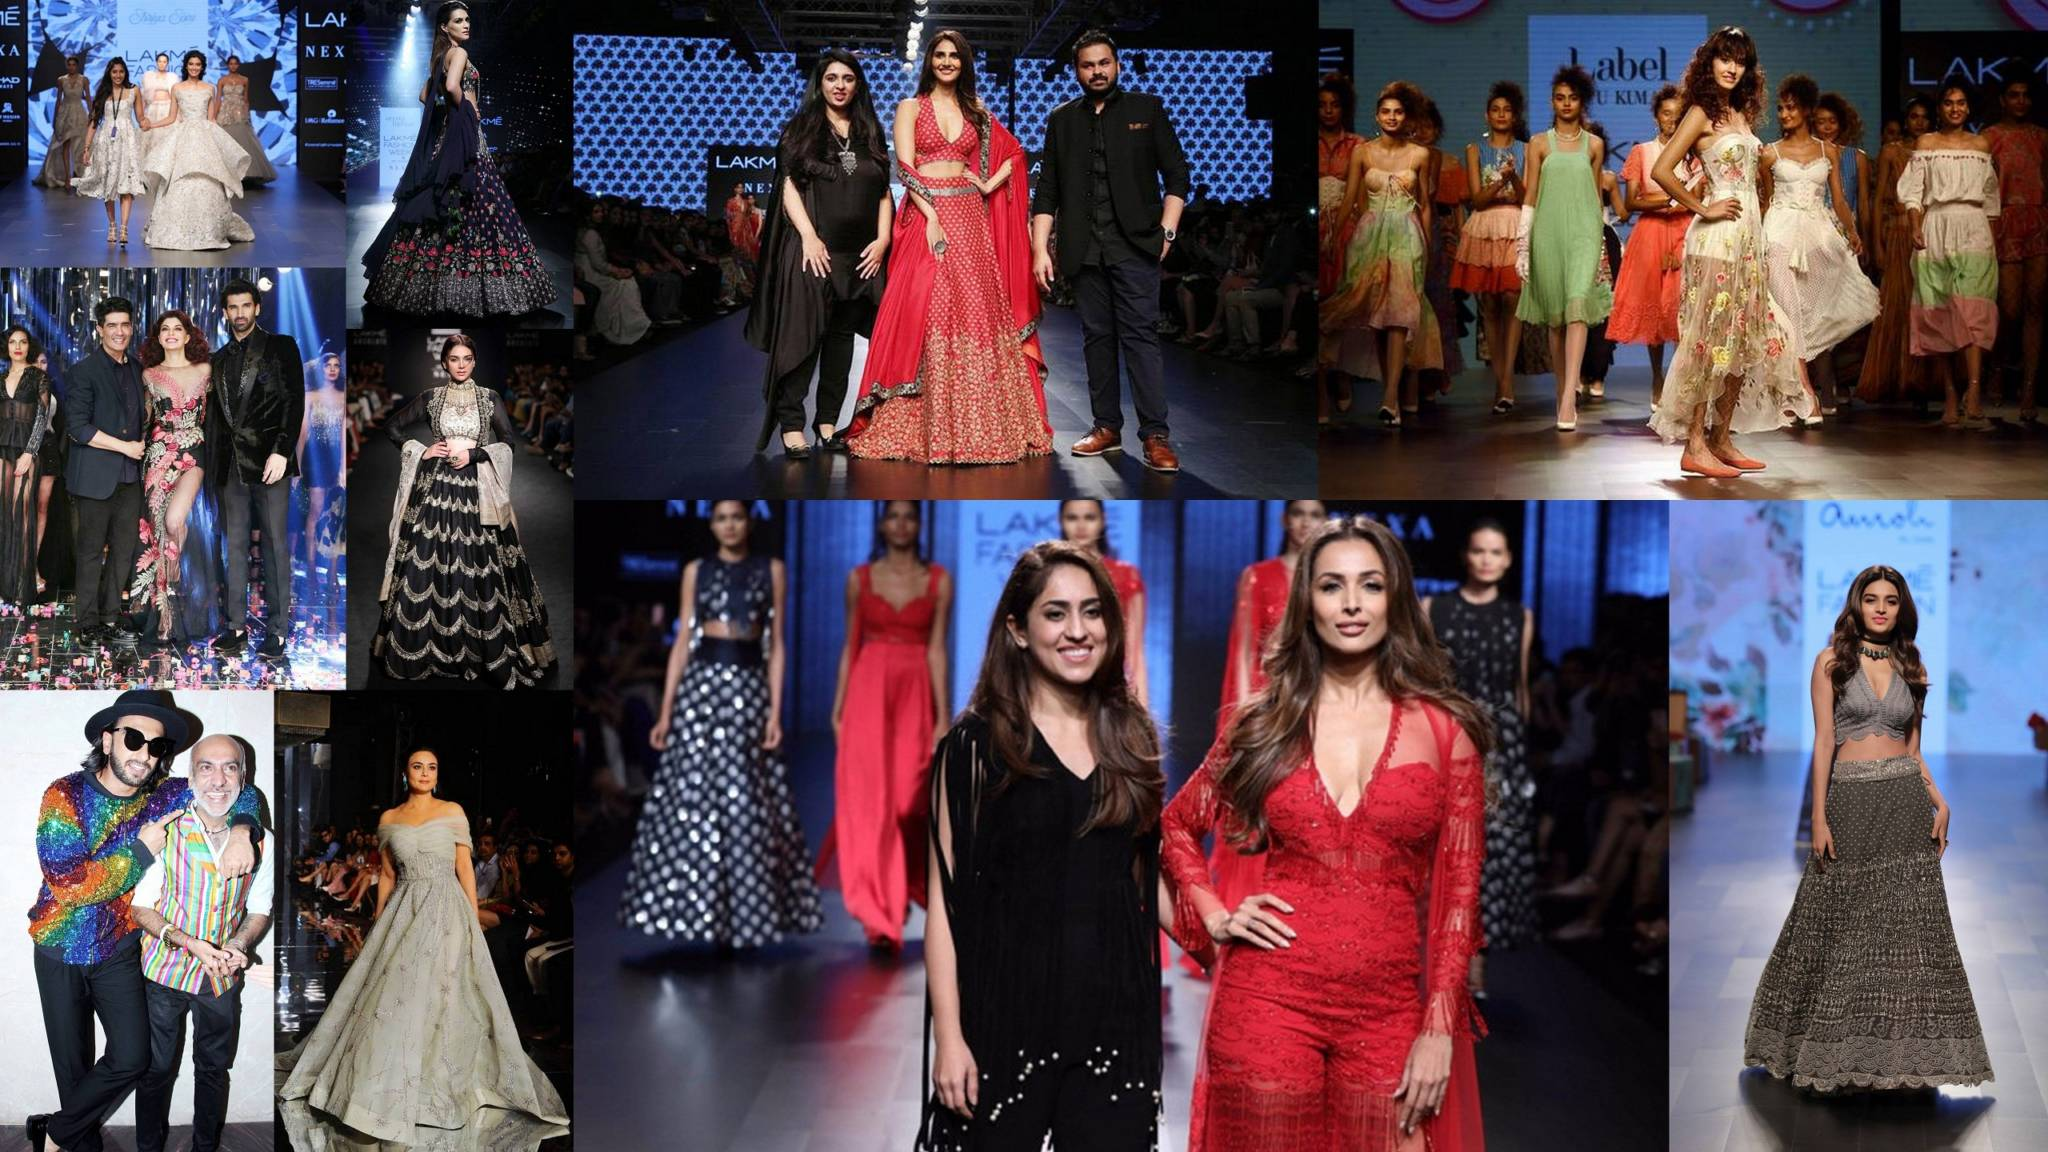 lakme fashion week 2017, lfw 2017, lfw, fashion week, bollywood, star. aditi rao hydari, jacqueline fernandez, lakme fashion week winter festive 2017, manish malhotra, ranveer singh